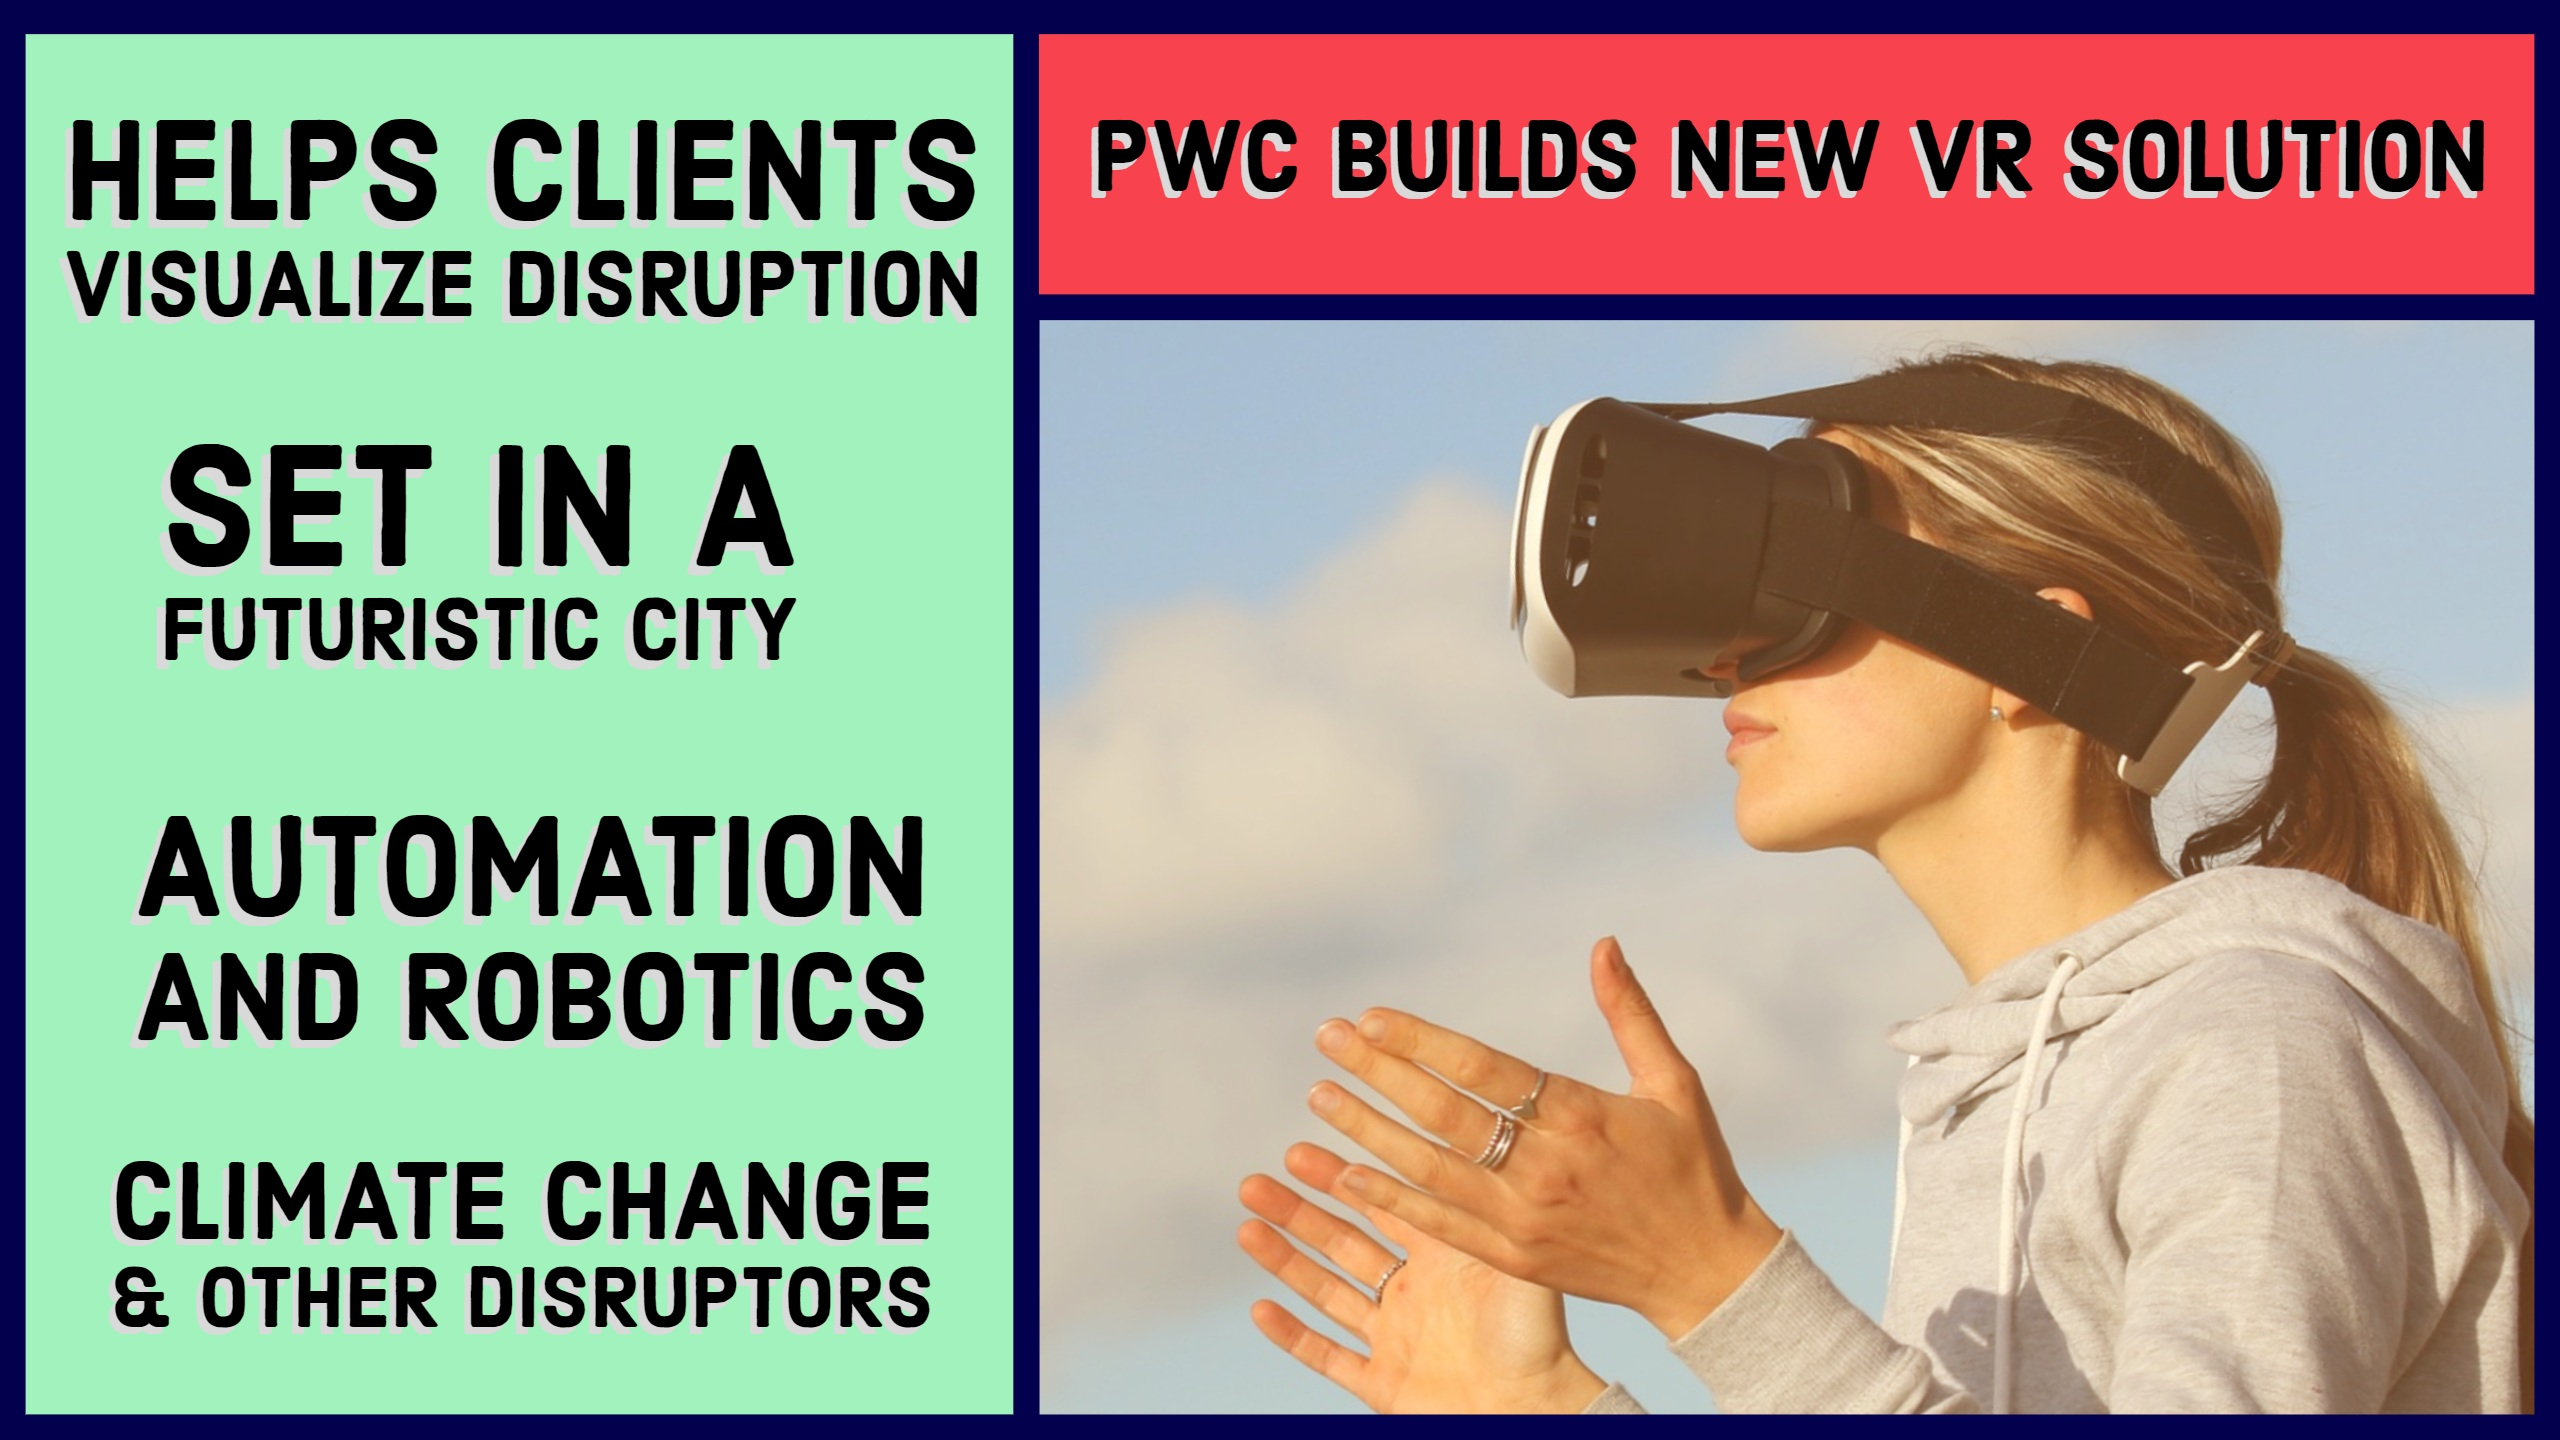 pwc virtual reality disruption 2018